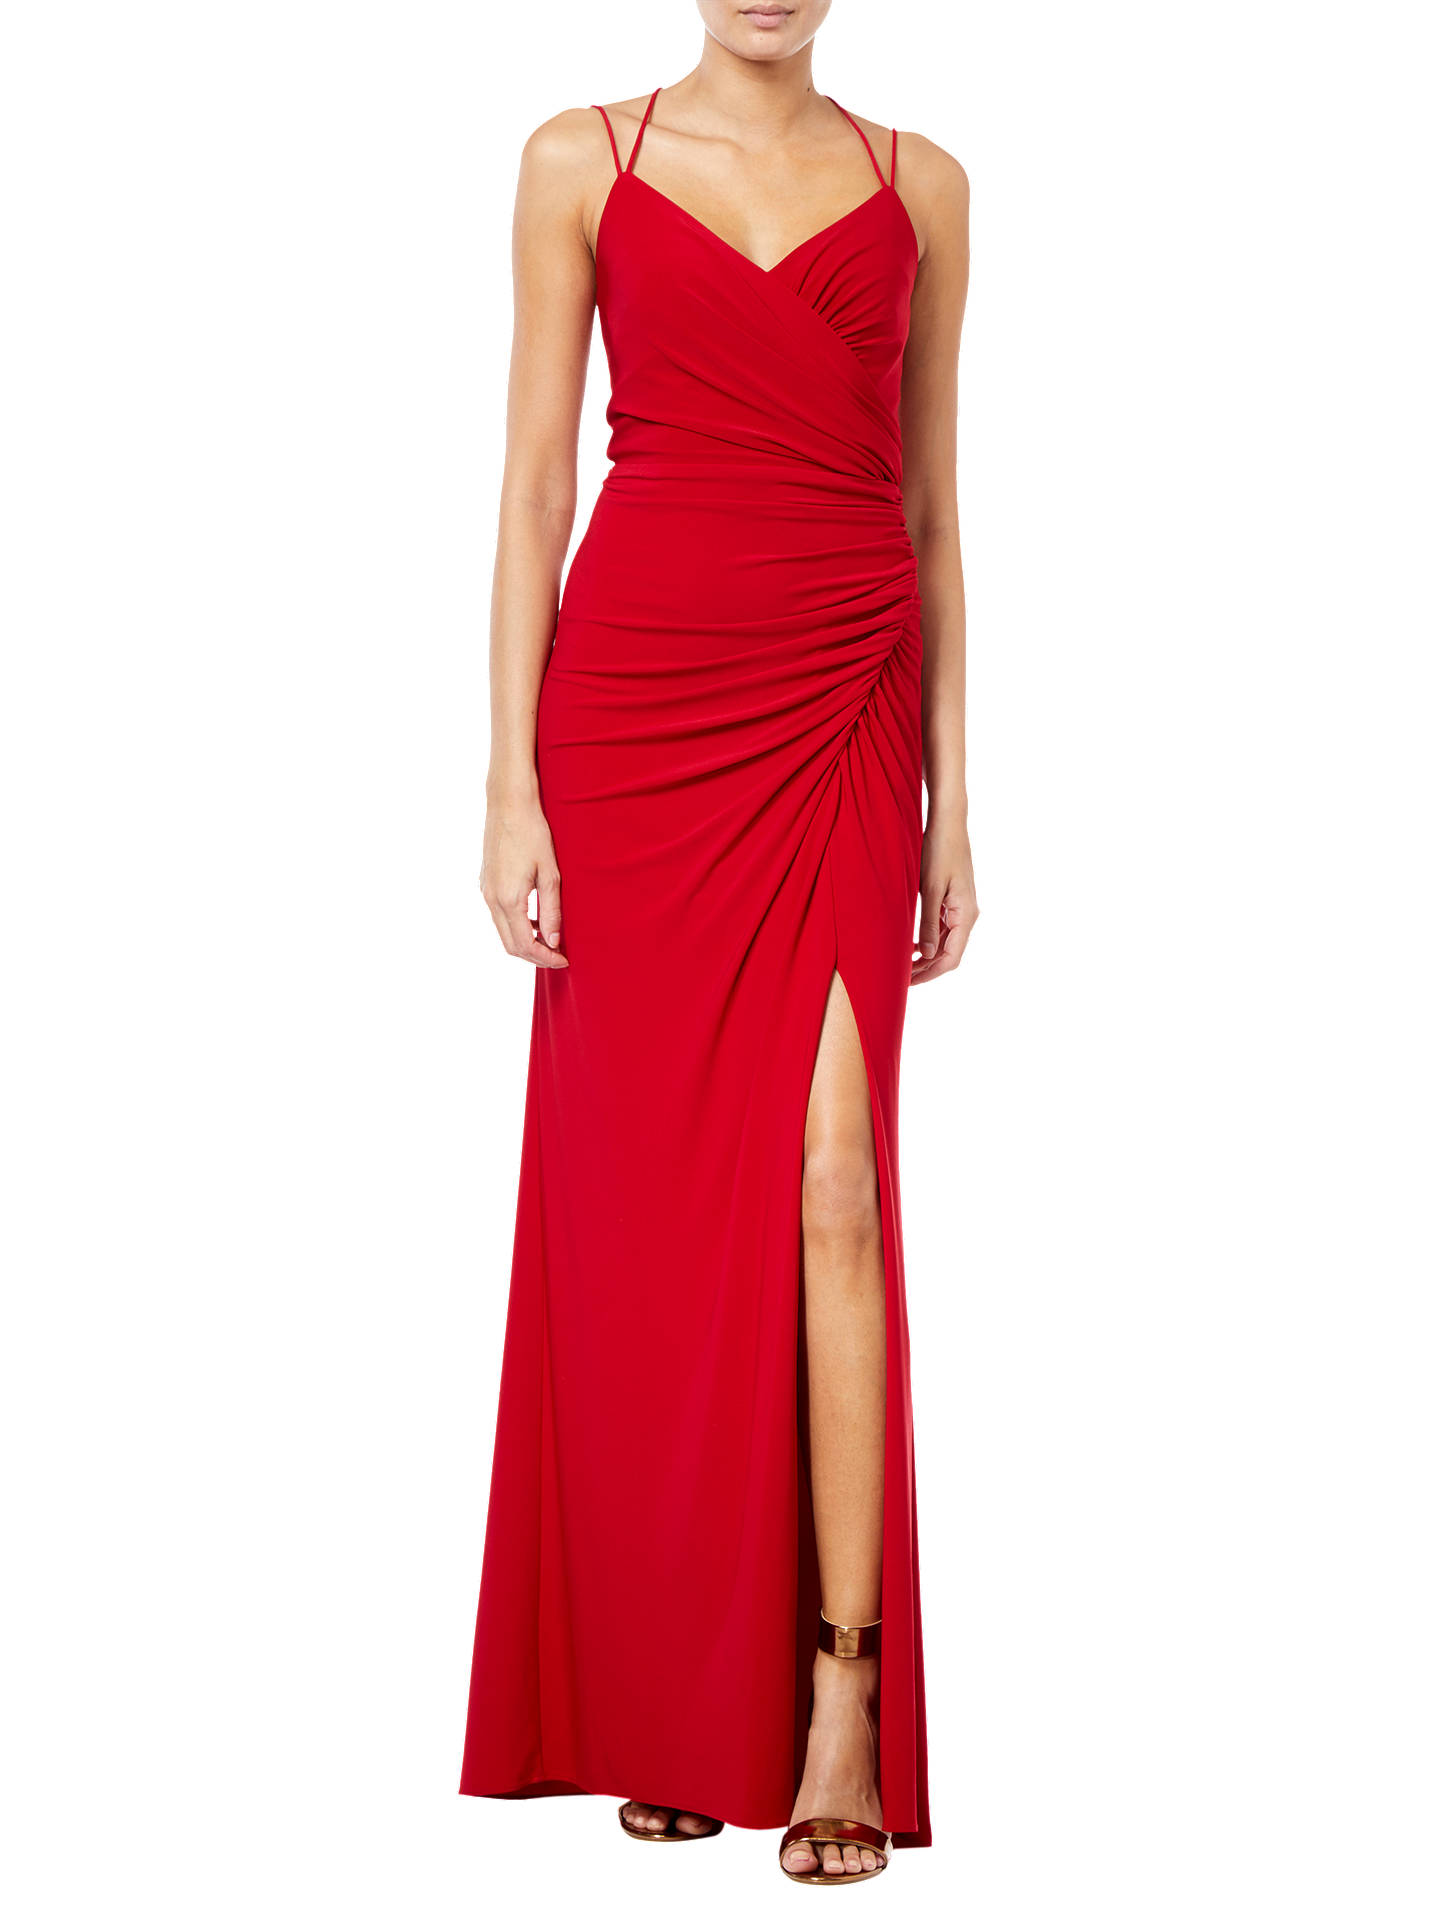 3349cb022e25 Buy Adrianna Papell Jersey Dress, Cardinal Red, 6 Online at johnlewis.com  ...